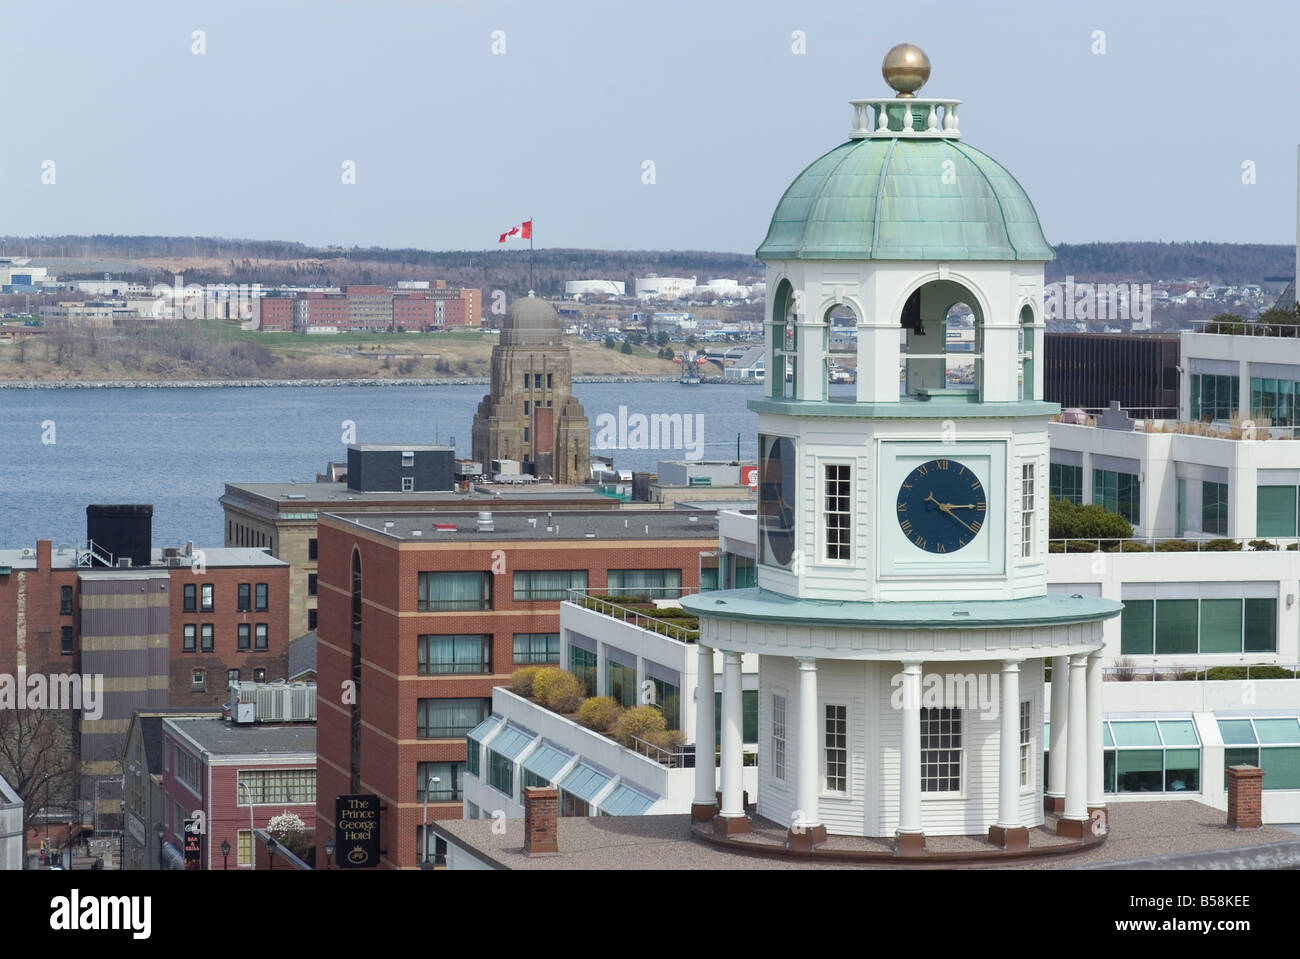 19th century clock tower, one of the city's landmarks, Halifax, Nova Scotia, Canada, North America - Stock Image